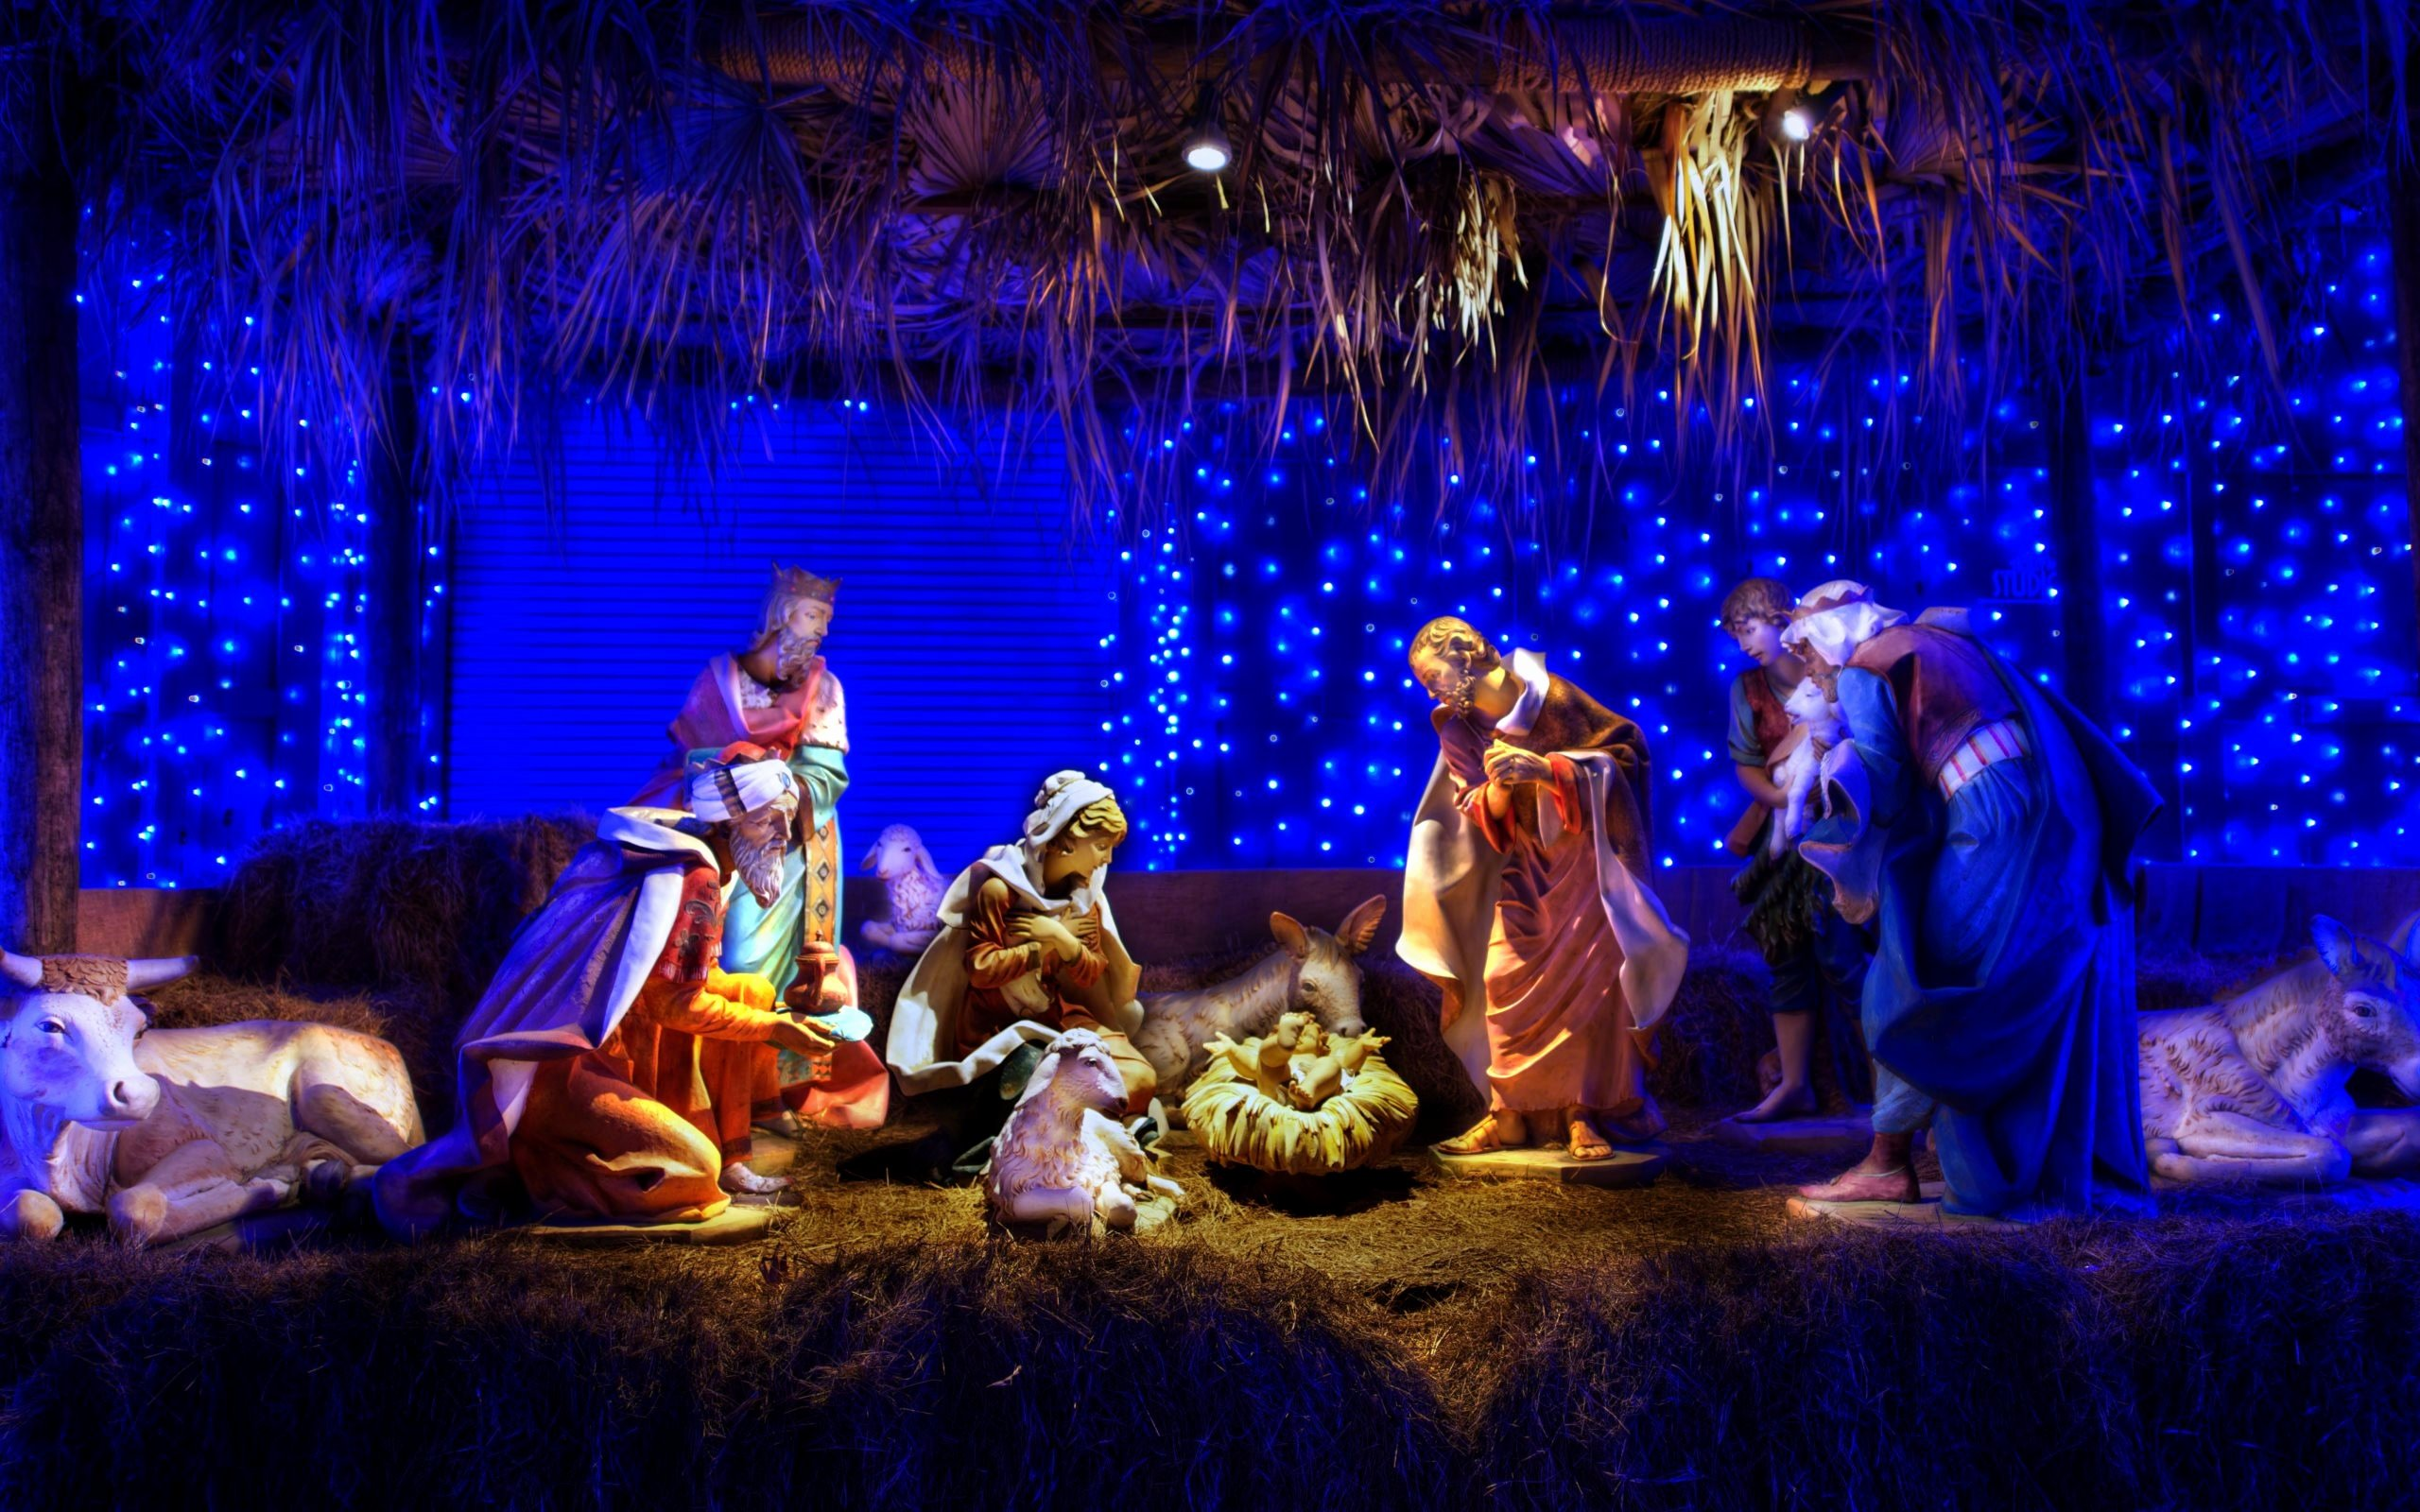 Free Christmas Desktop Wallpaper Awesome Christmas Nativity Scene Wallpaper ·① Download Free Hd